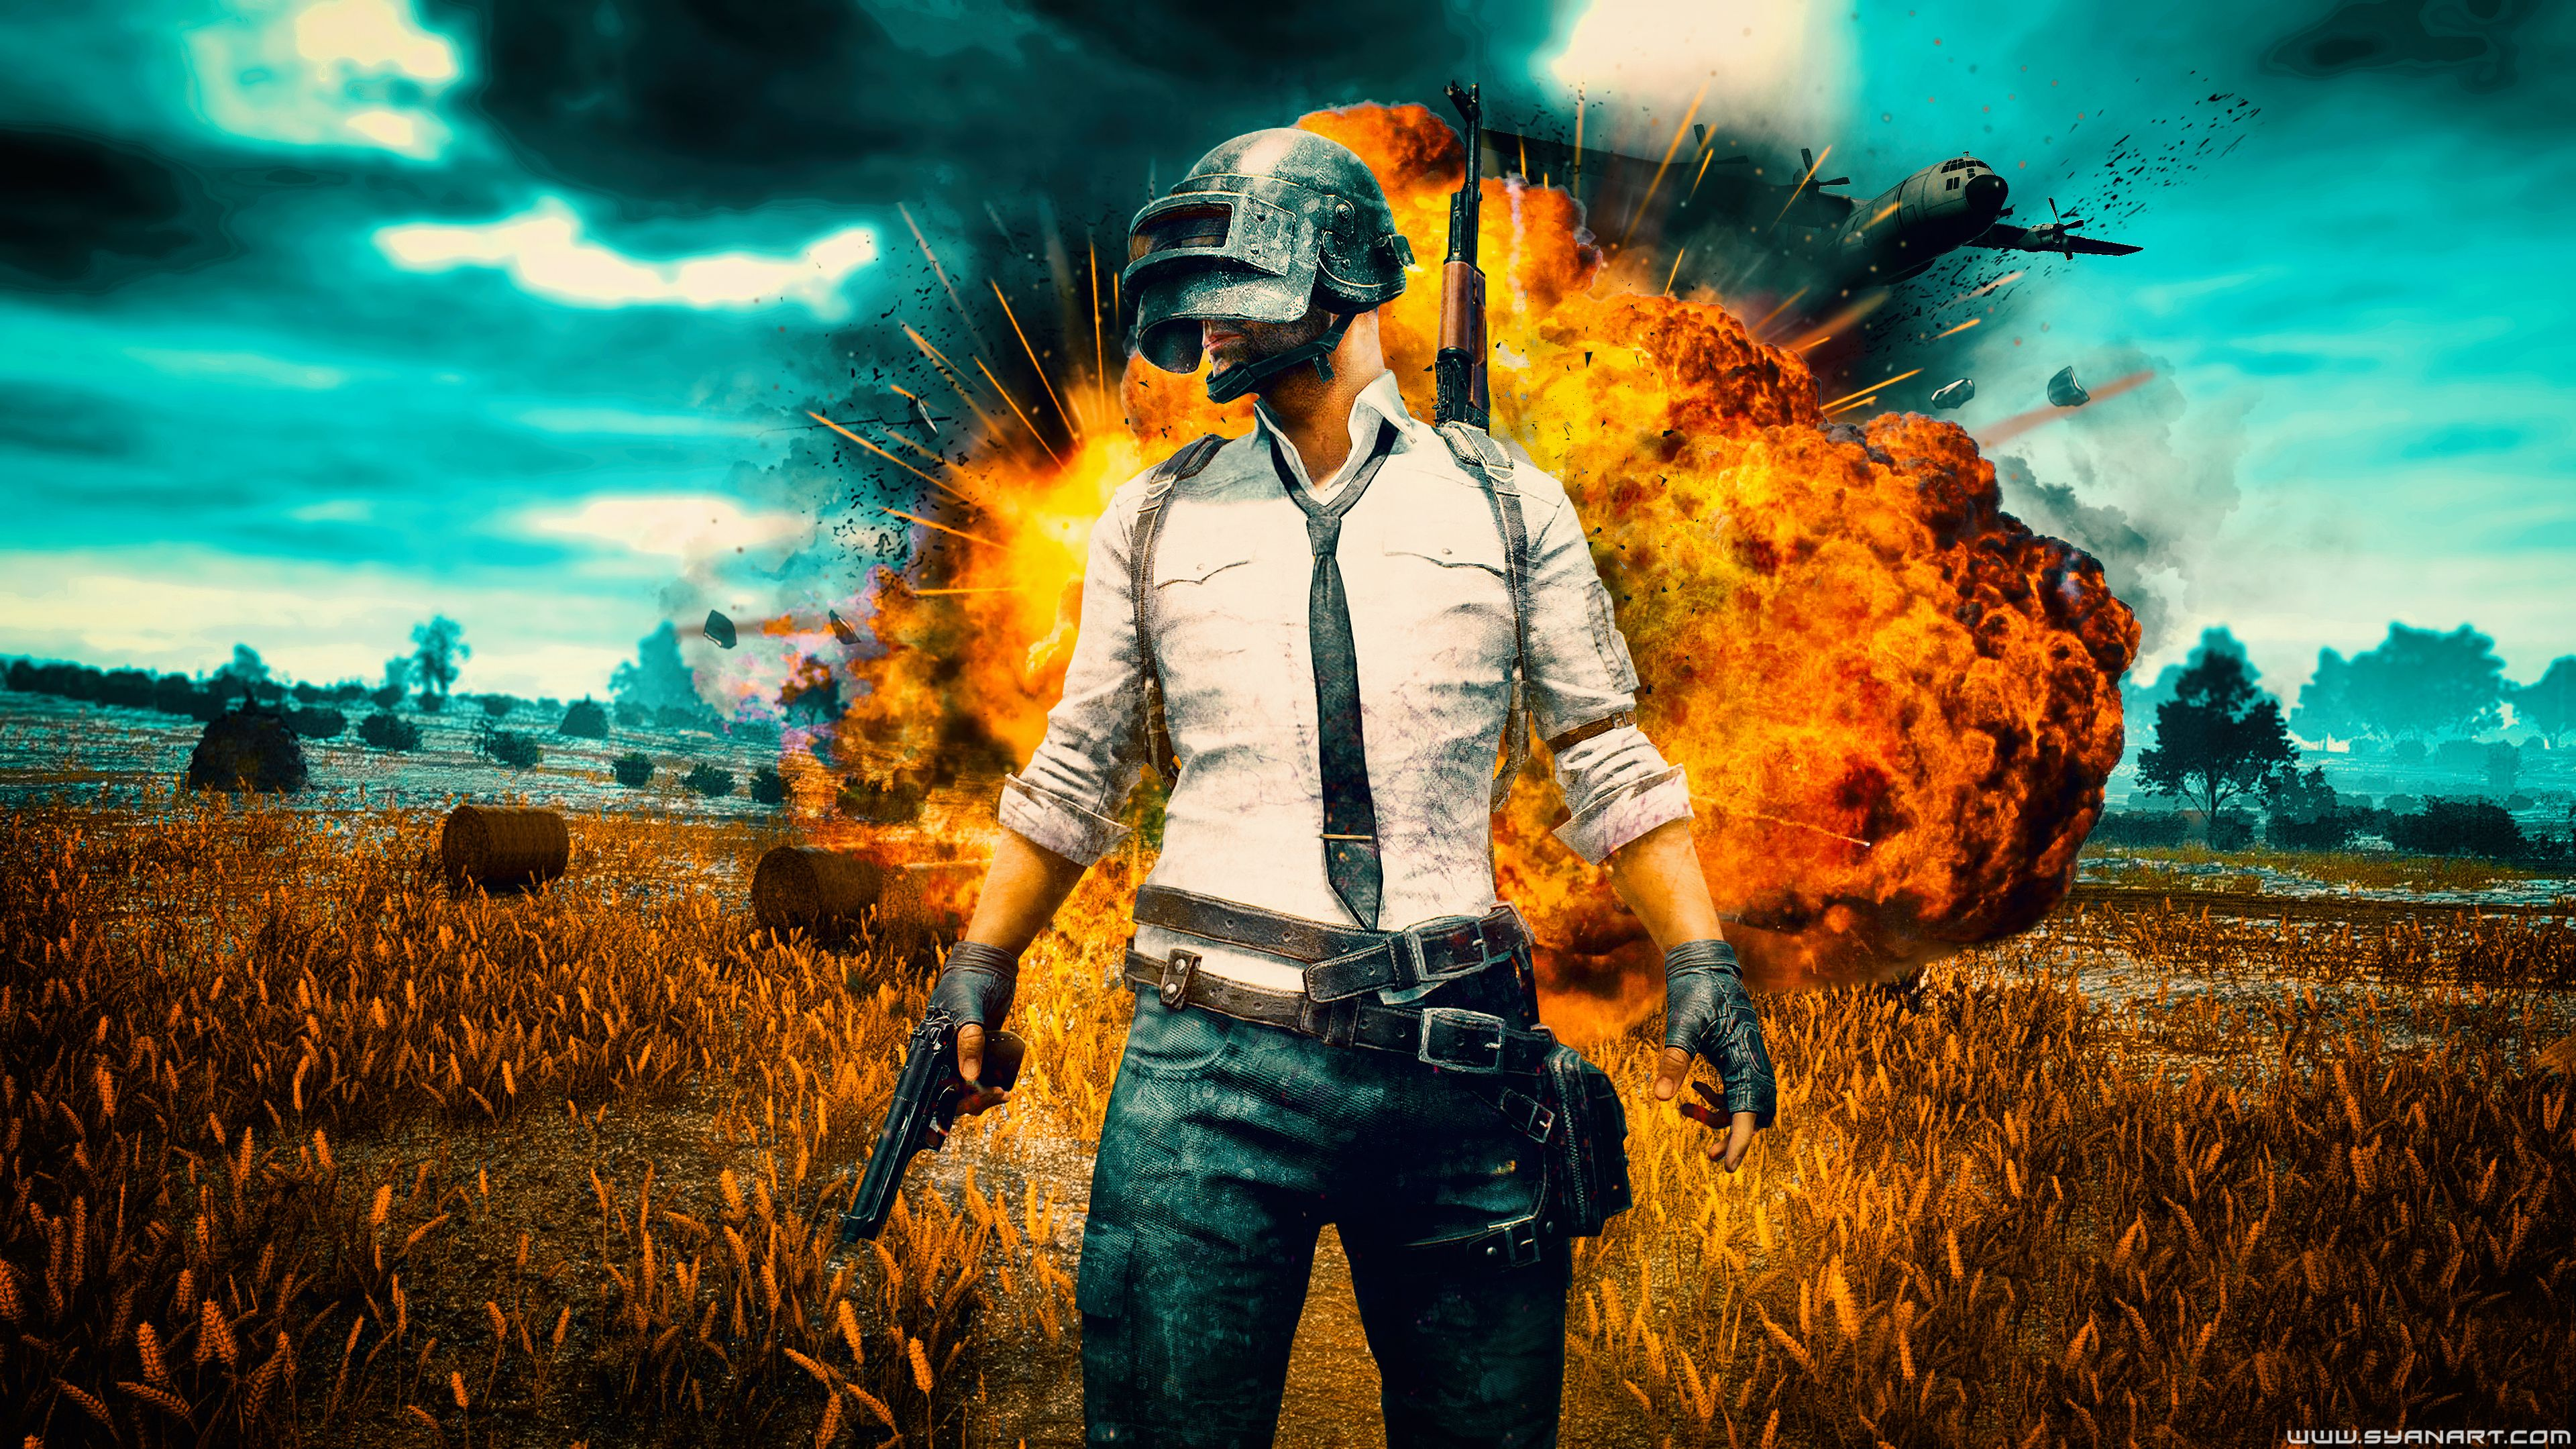 Pubg 4k Wallpaper Pubg Pubgd4kwallpaper Hd Wallpapers For Pc Wallpaper Pc 4k Wallpapers For Pc